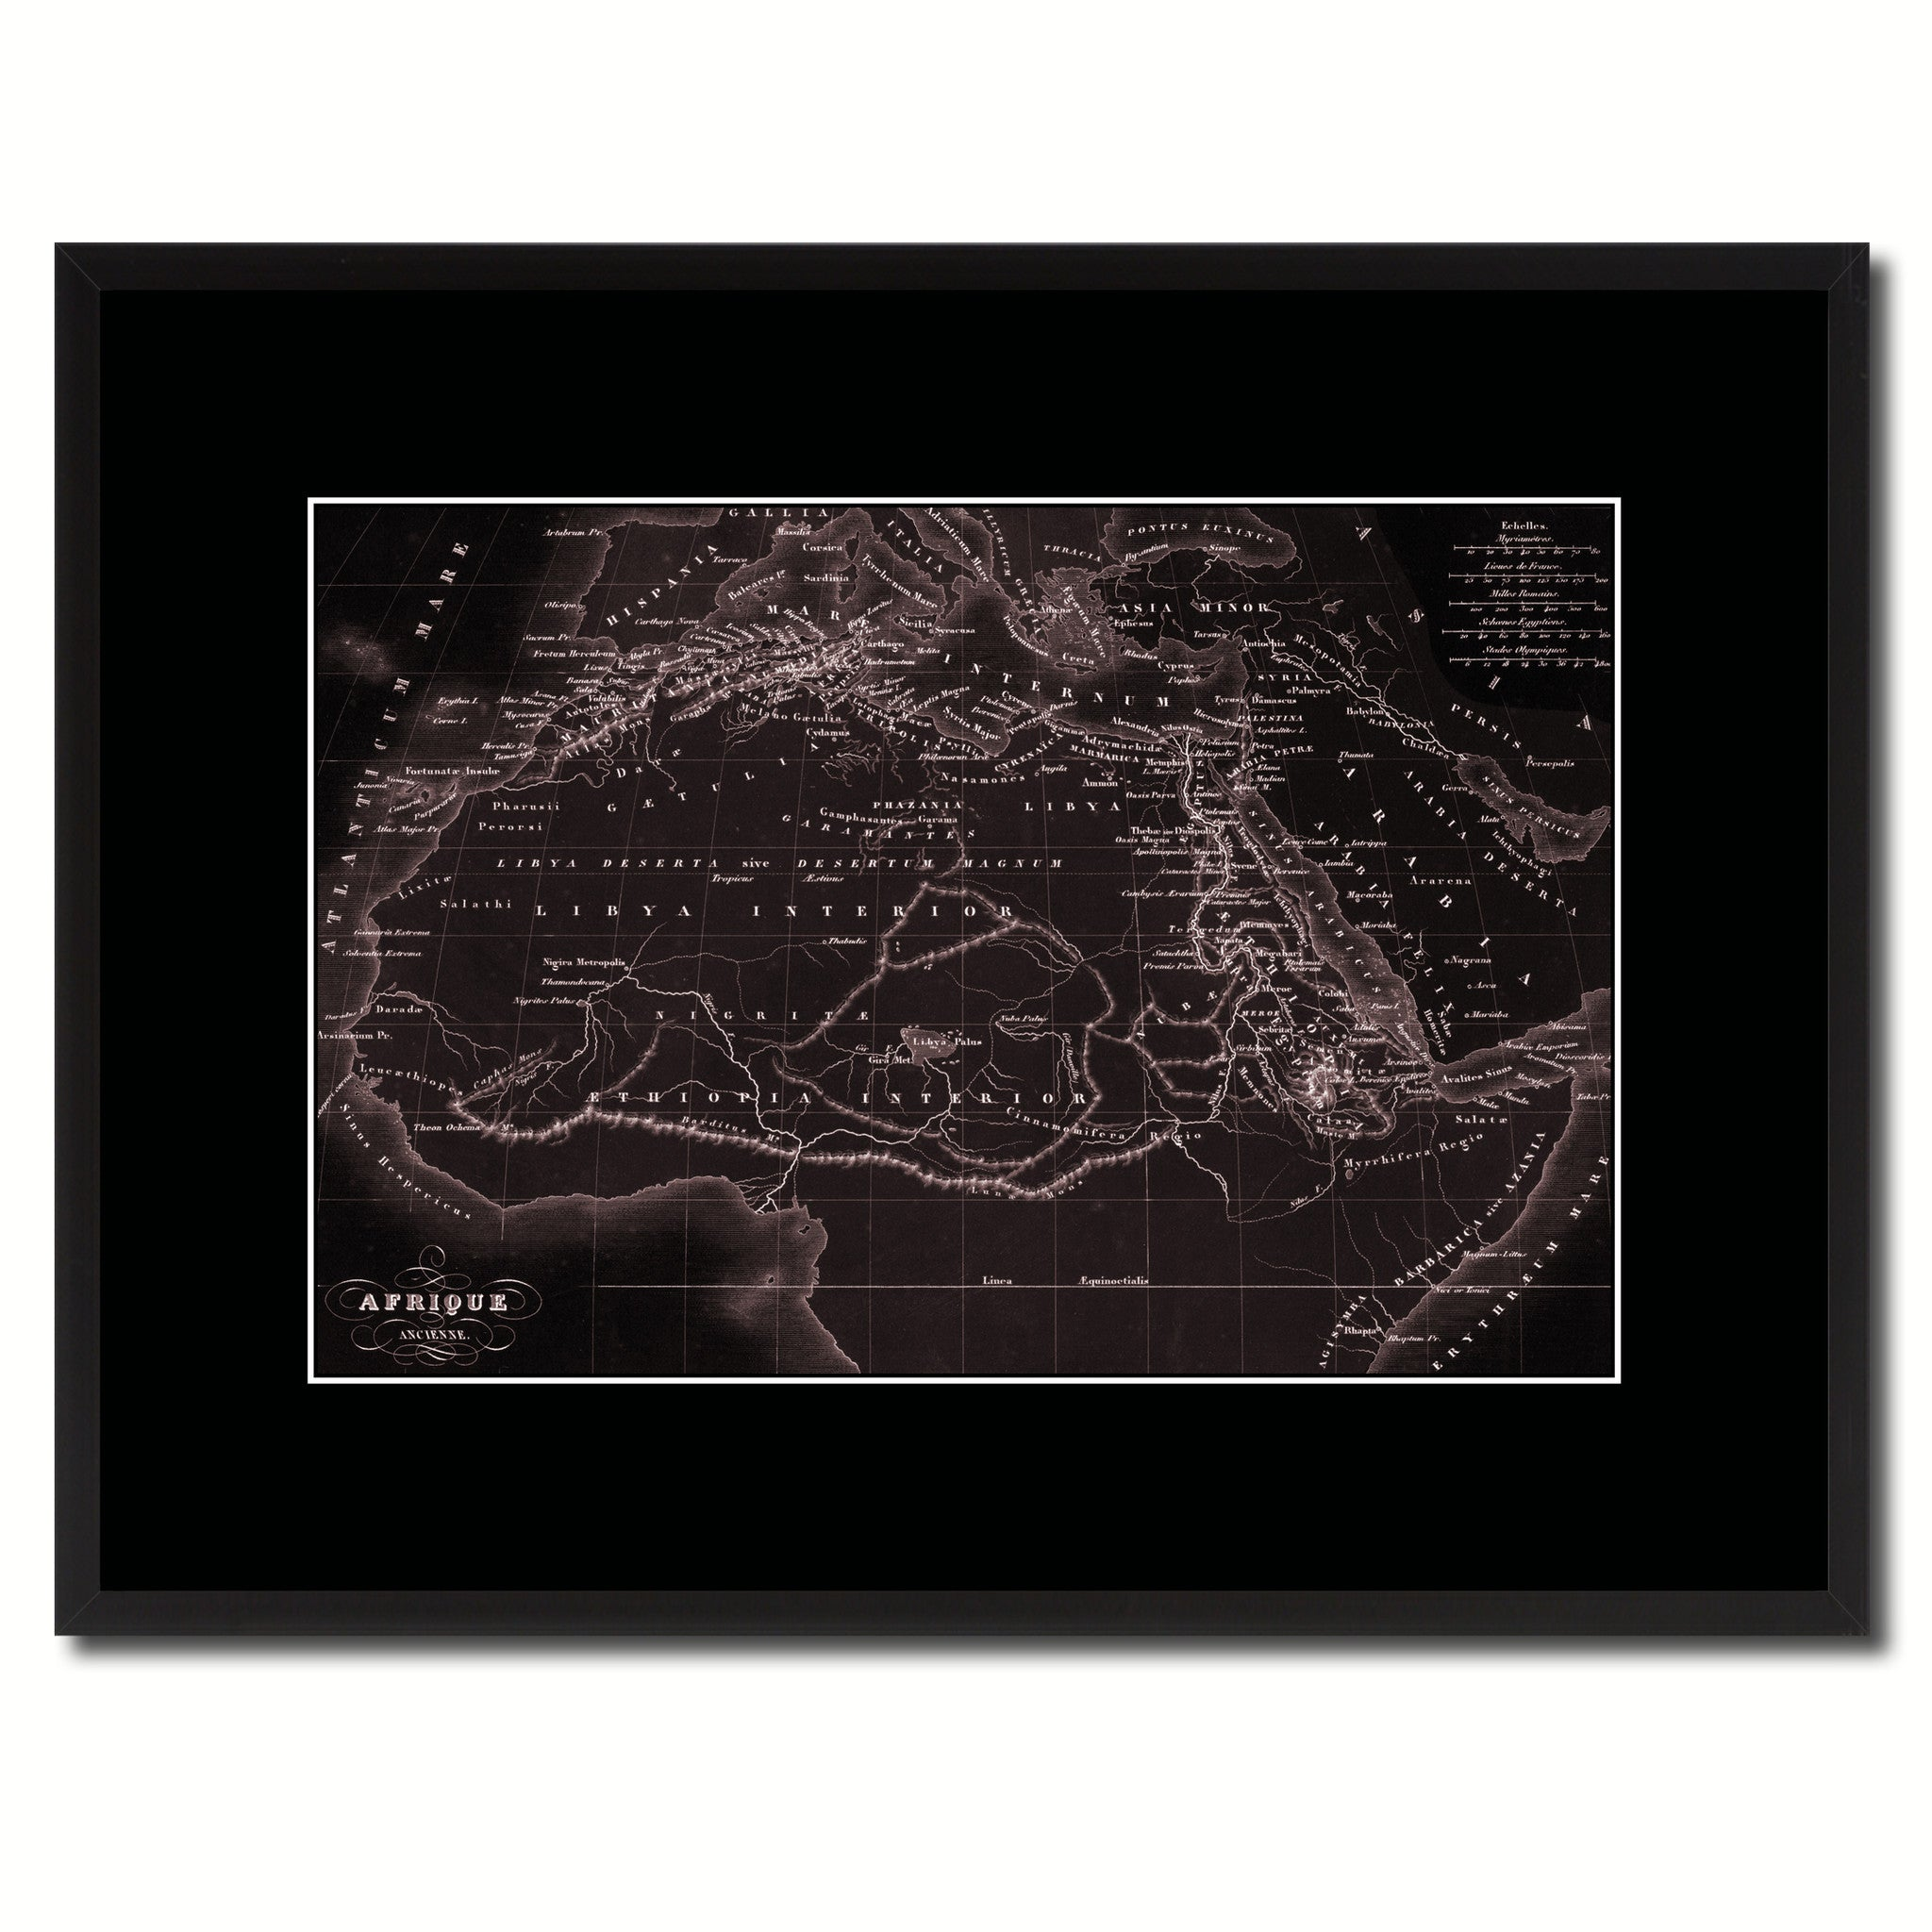 Ancient Africa Vintage Vivid Sepia Map Canvas Print, Picture Frames Home Decor Wall Art Decoration Gifts